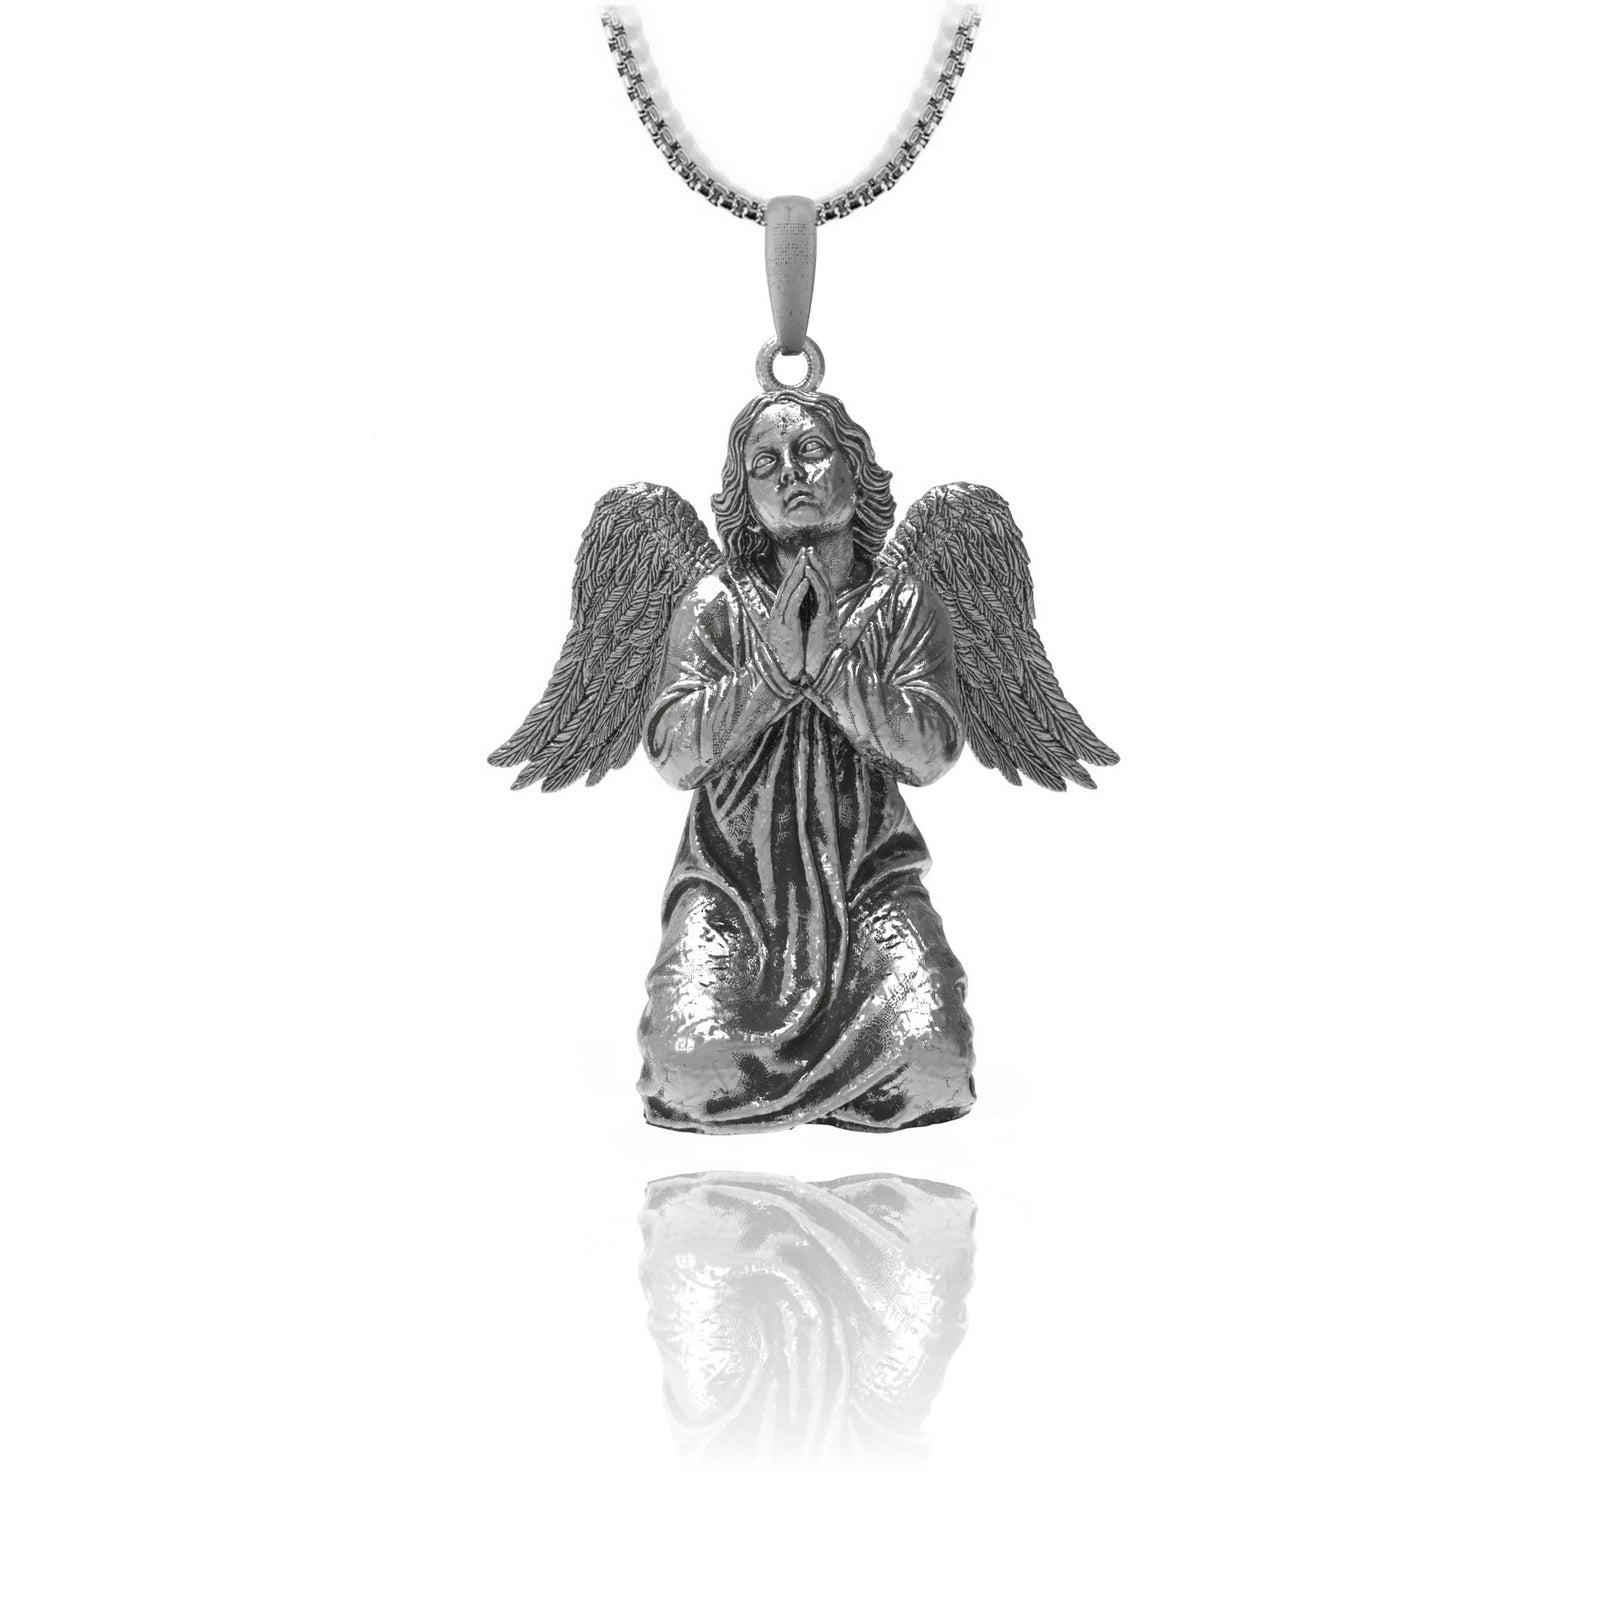 Praying cherub - Sterling silver